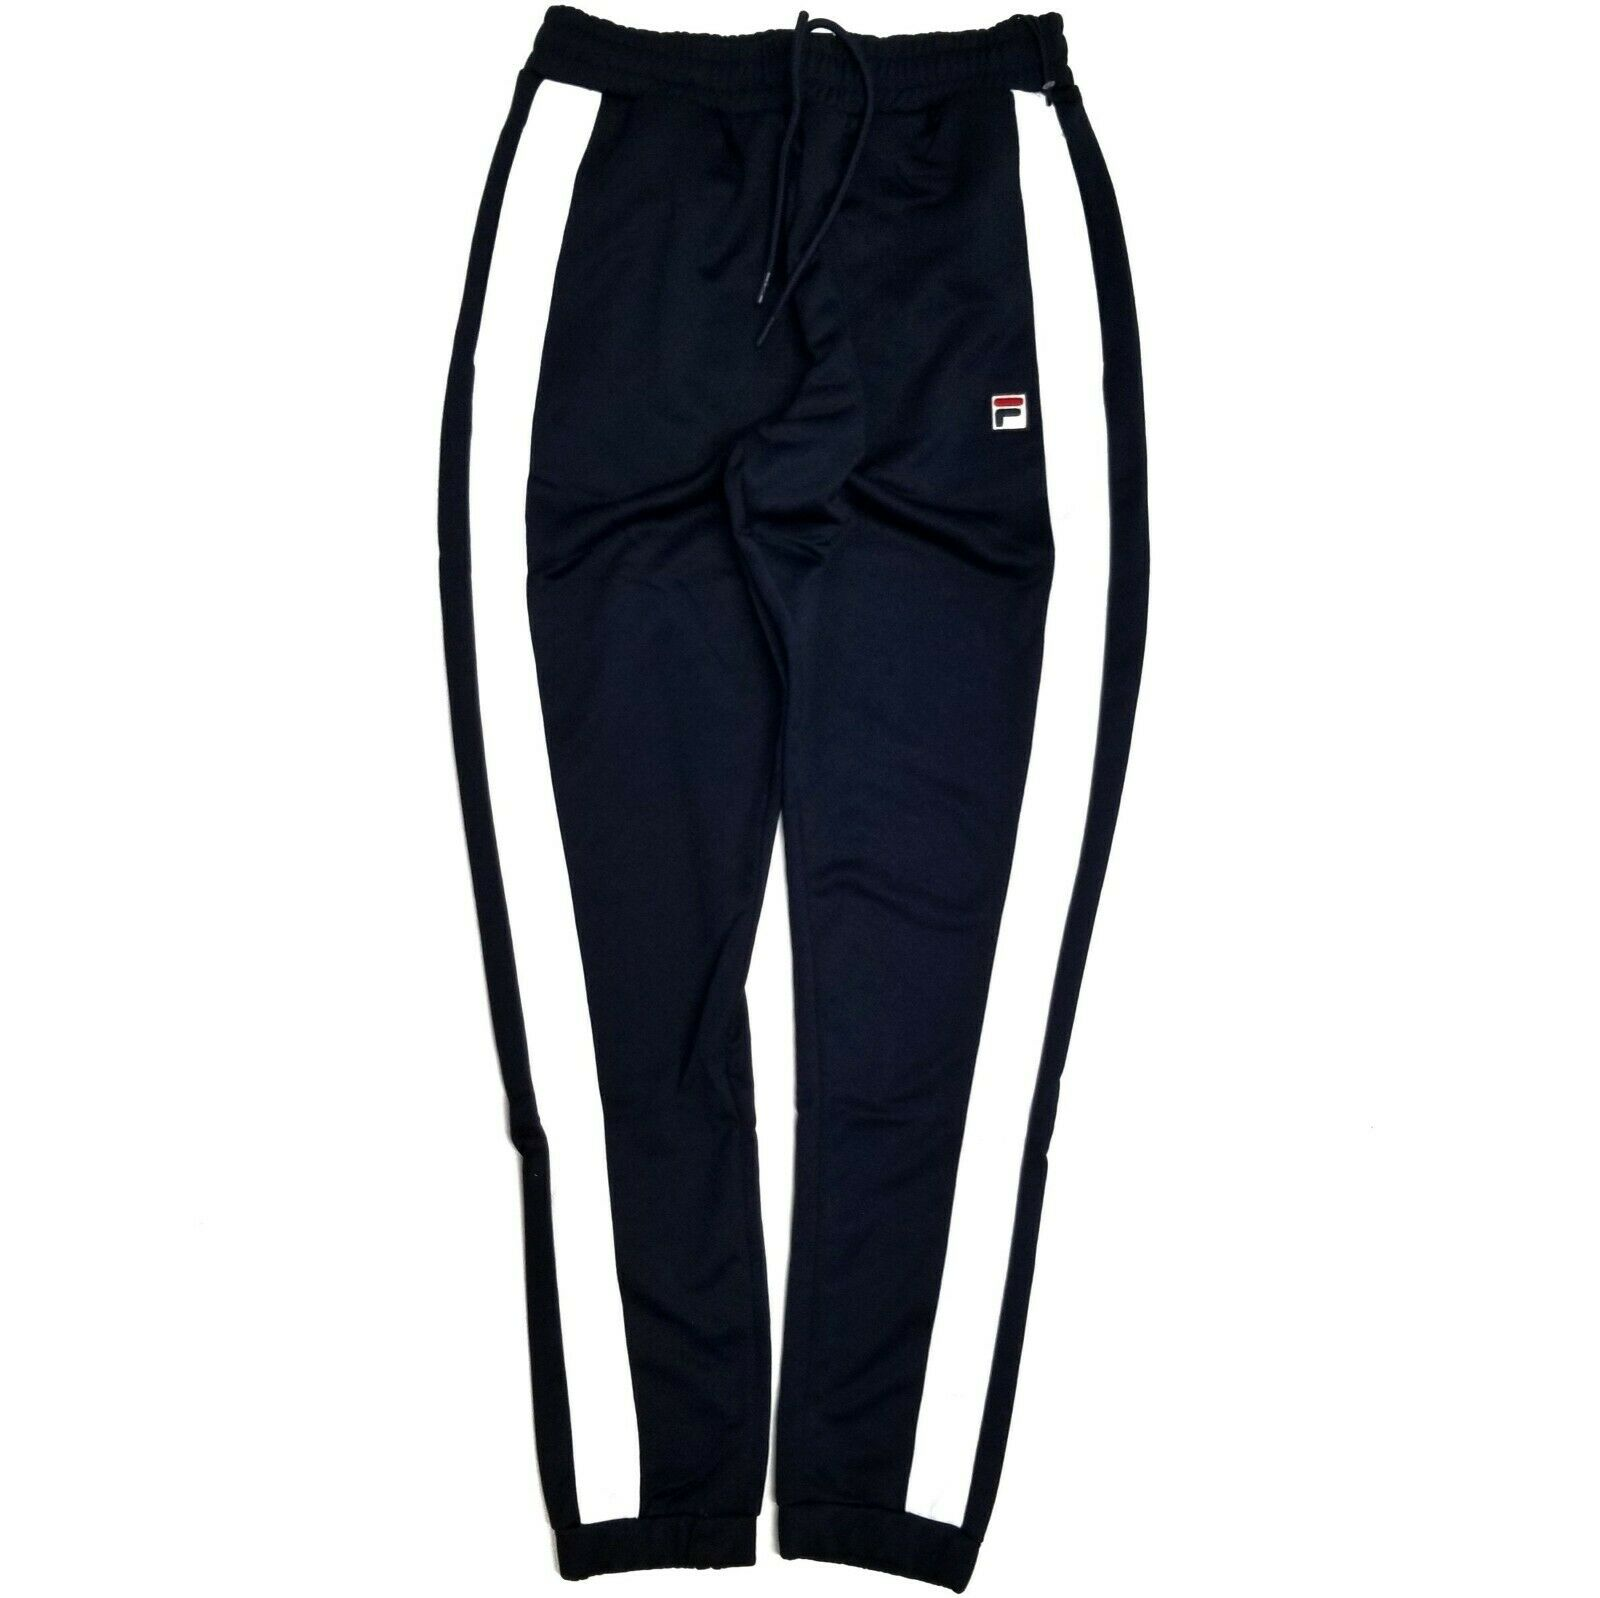 be4237a773 Fila Peacoat Renzo Pant White nyqirm17739-Trousers - www.exgrowlers.com